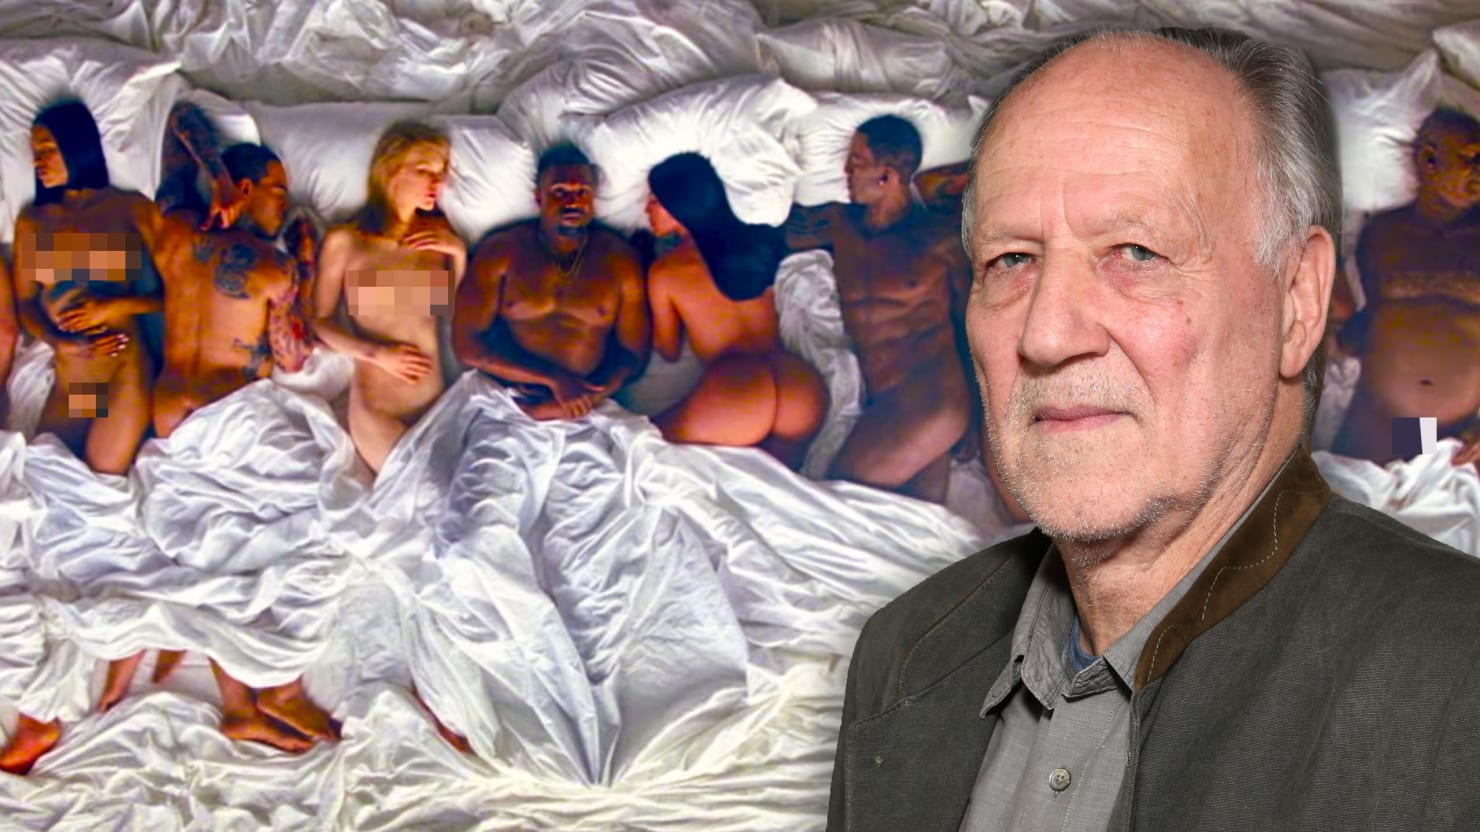 Watch: Werner Herzog Analyzes Kanye West's 'Famous' Music Video